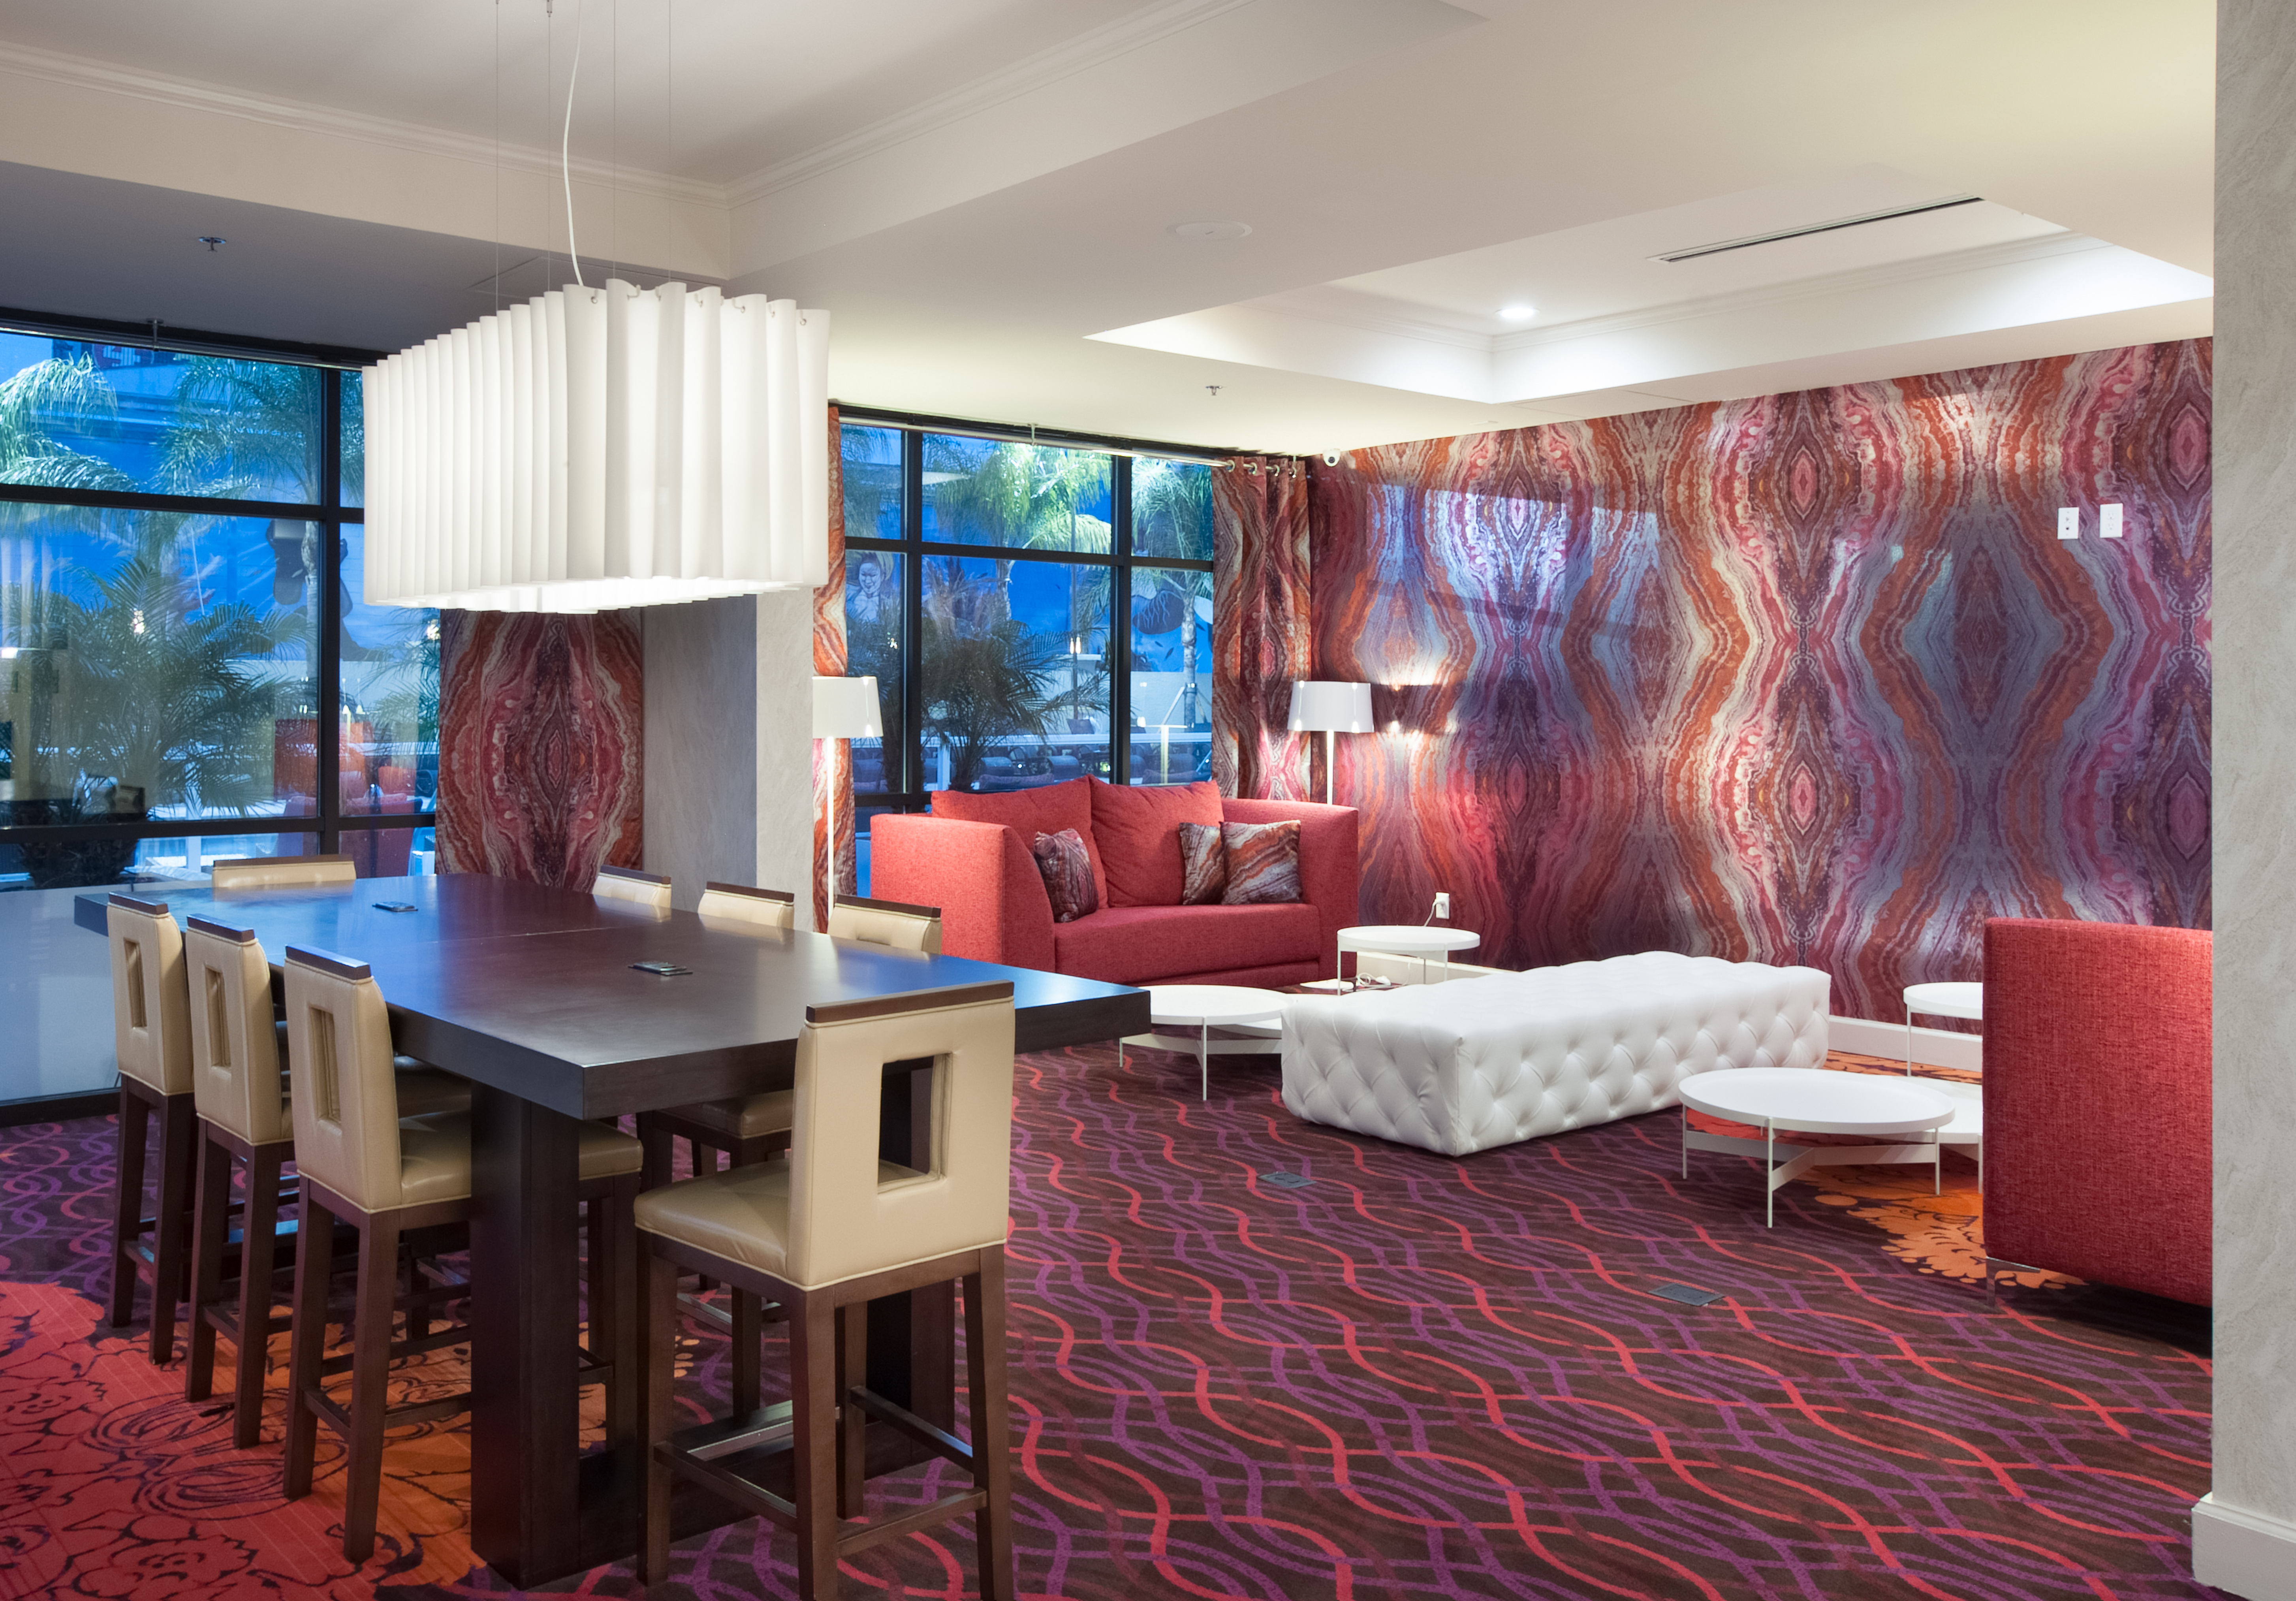 The Contemporary Hotel Lobby Of The Delta Orlando Lake Buena Vista Features  A Hanging Lamp, A Community Table Equipped With Electric Outlets, 2 Floor  Lamps, ...